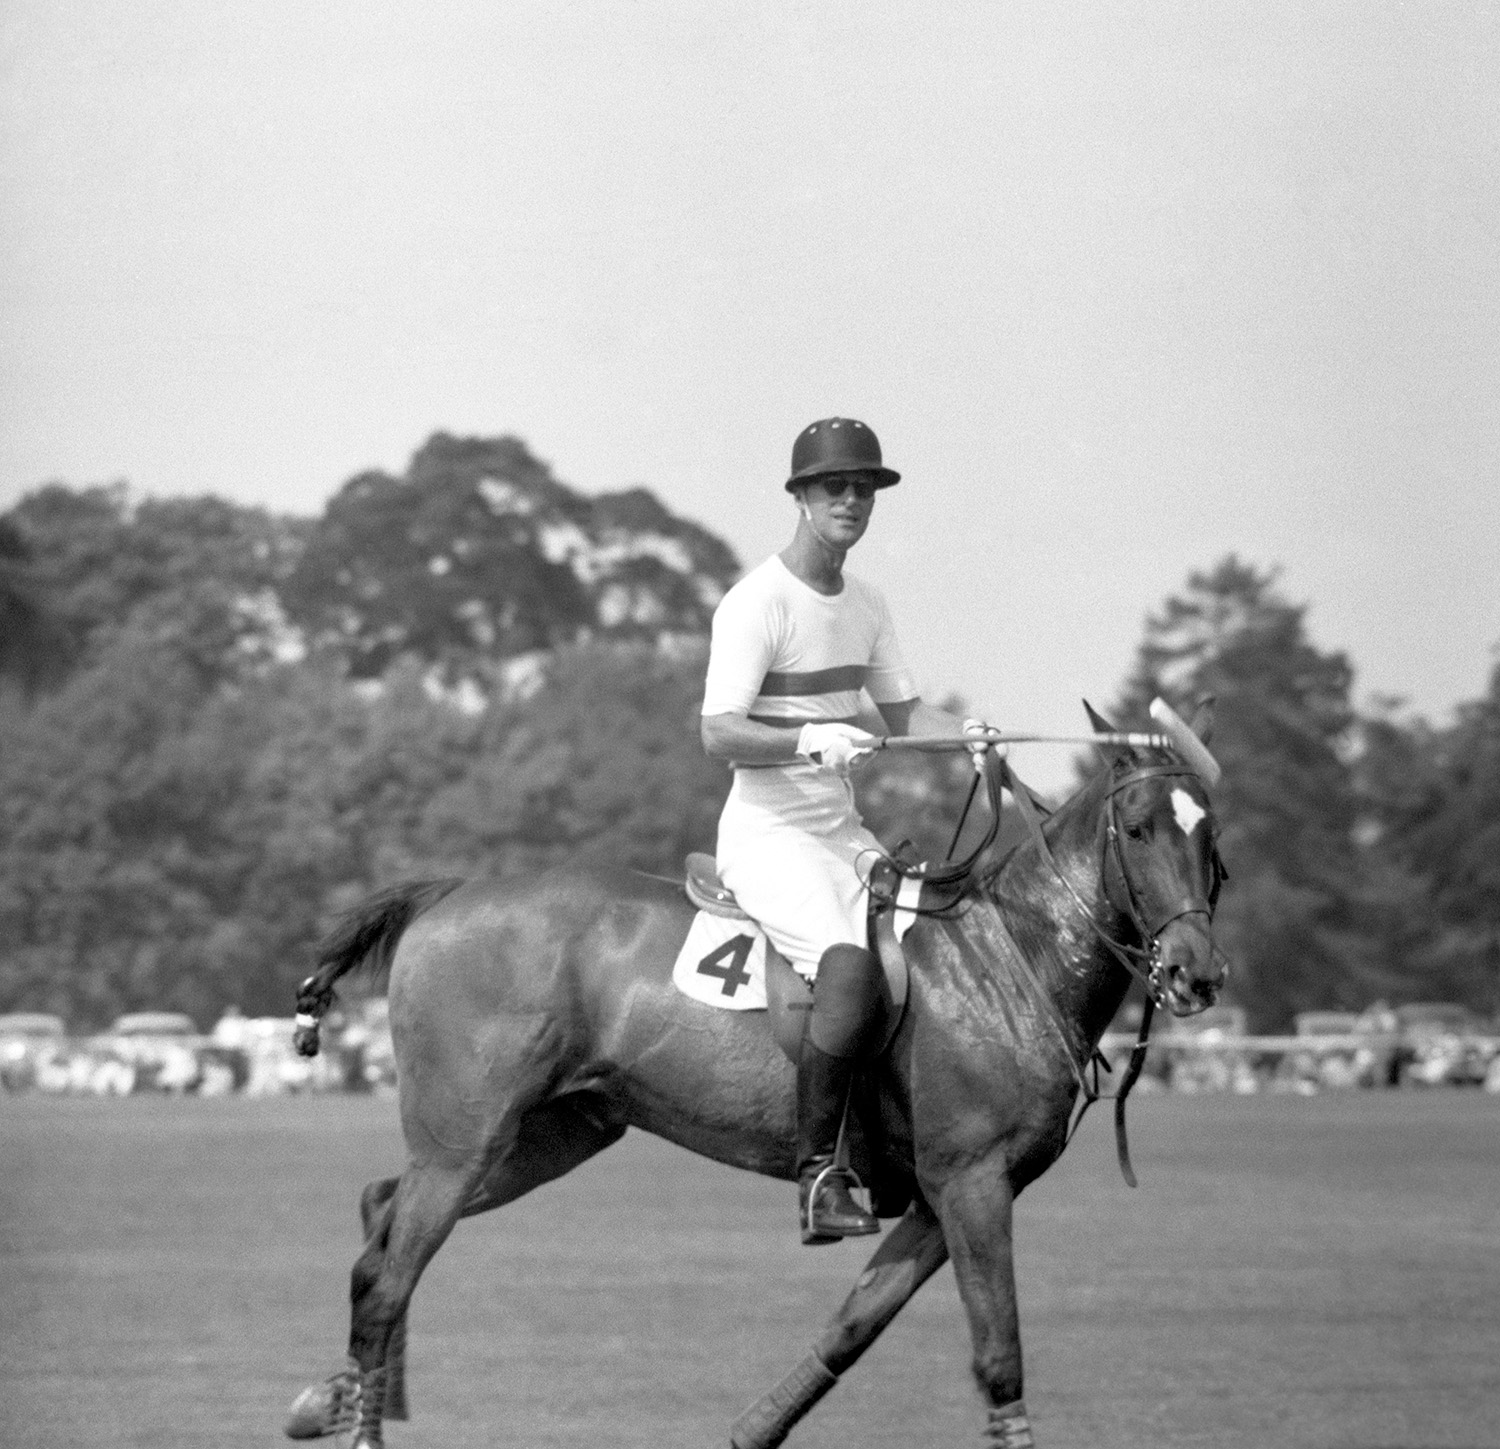 Royalty - Duke of Edinburgh - Polo Match - Windsor Great ParkThe Duke of Edinburgh plays polo at Smith's Lawn, Windsor Great Park, as a member of the Welsh Guards team.